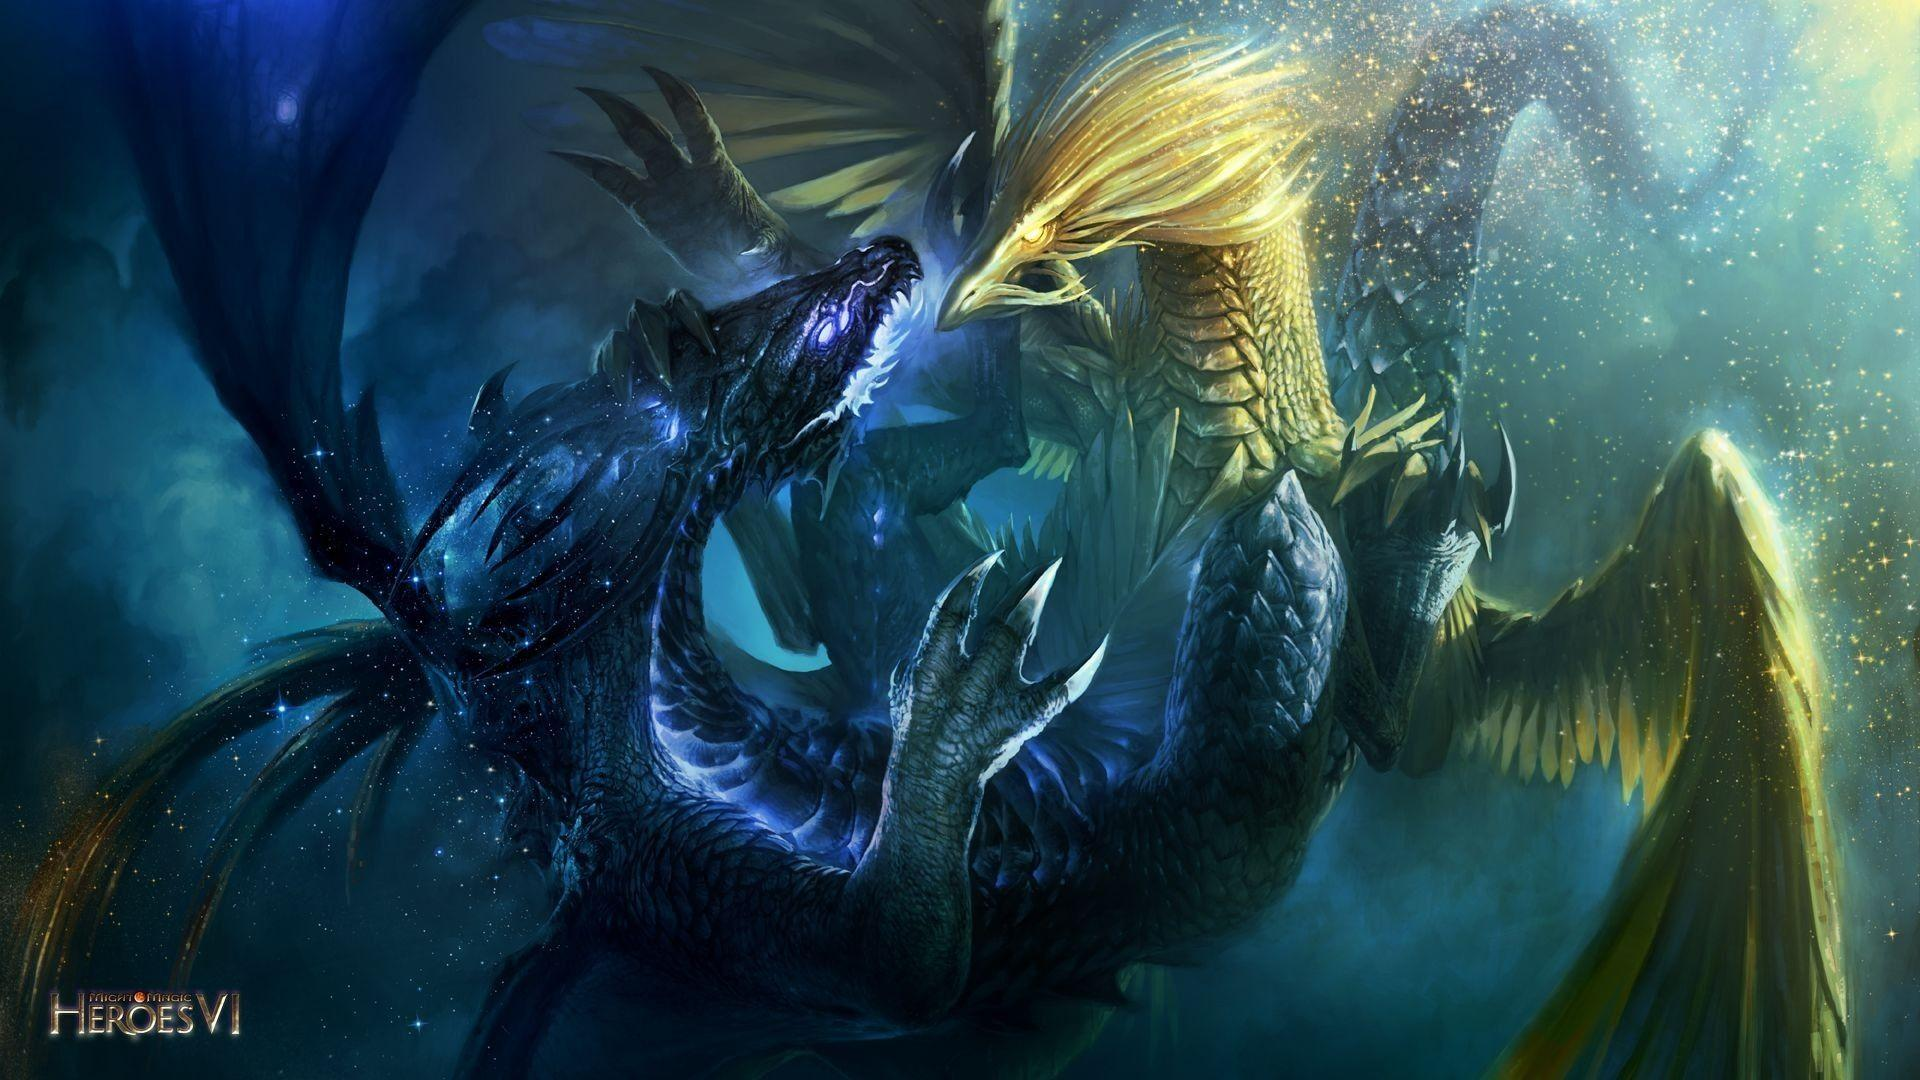 Awesome Dragon Wallpapers Hd 1080p